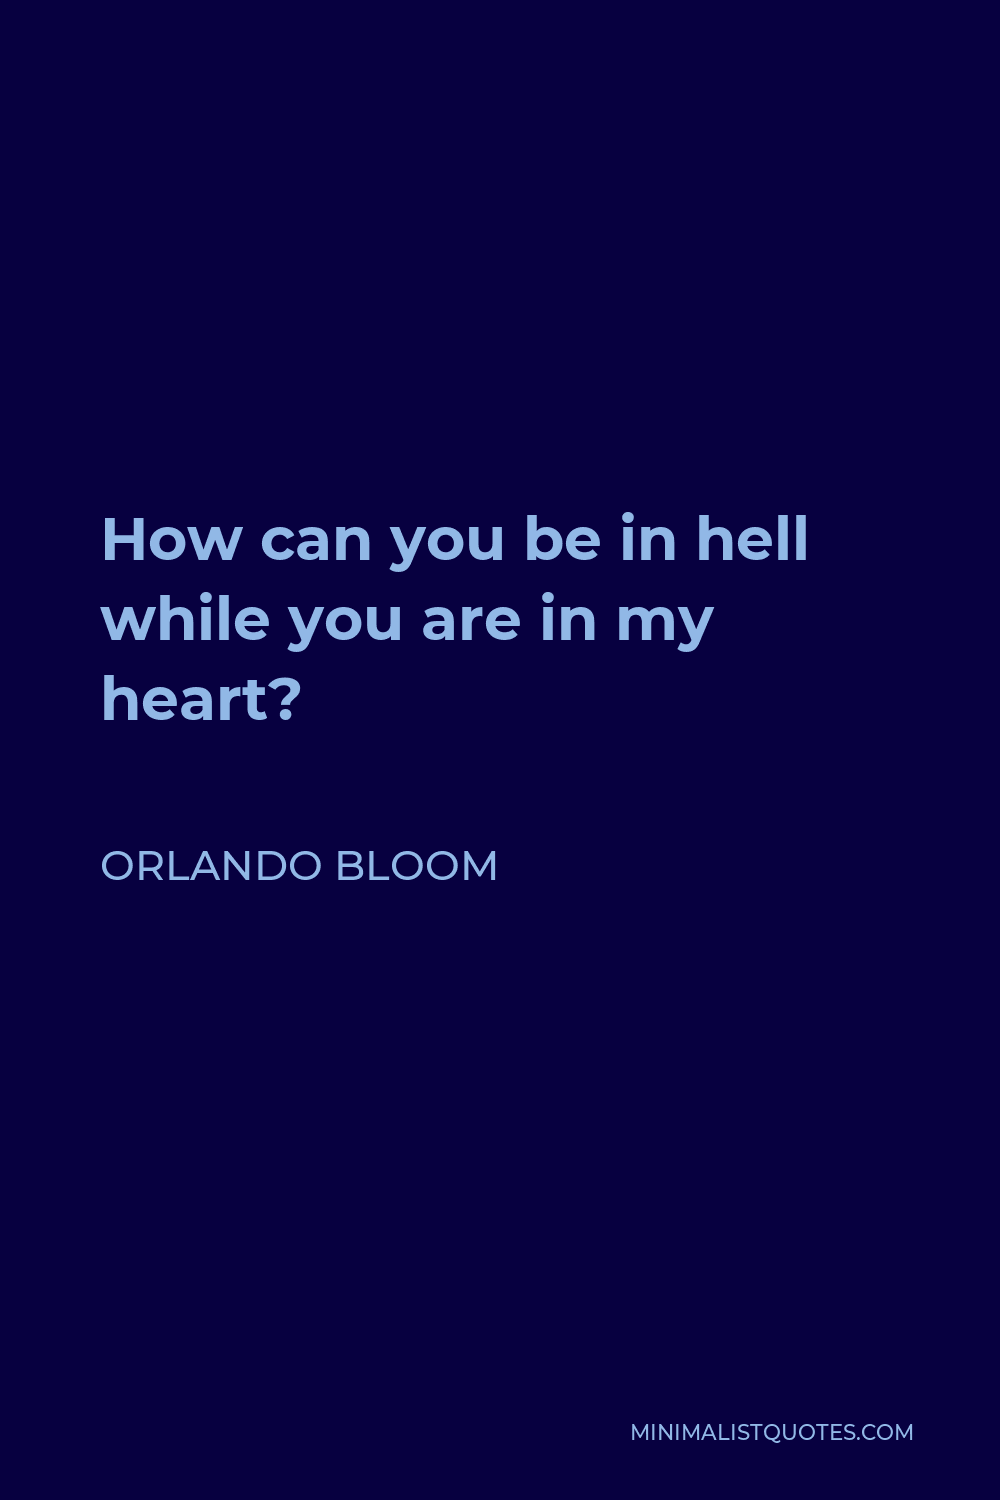 Orlando Bloom Quote - How can you be in hell while you are in my heart?